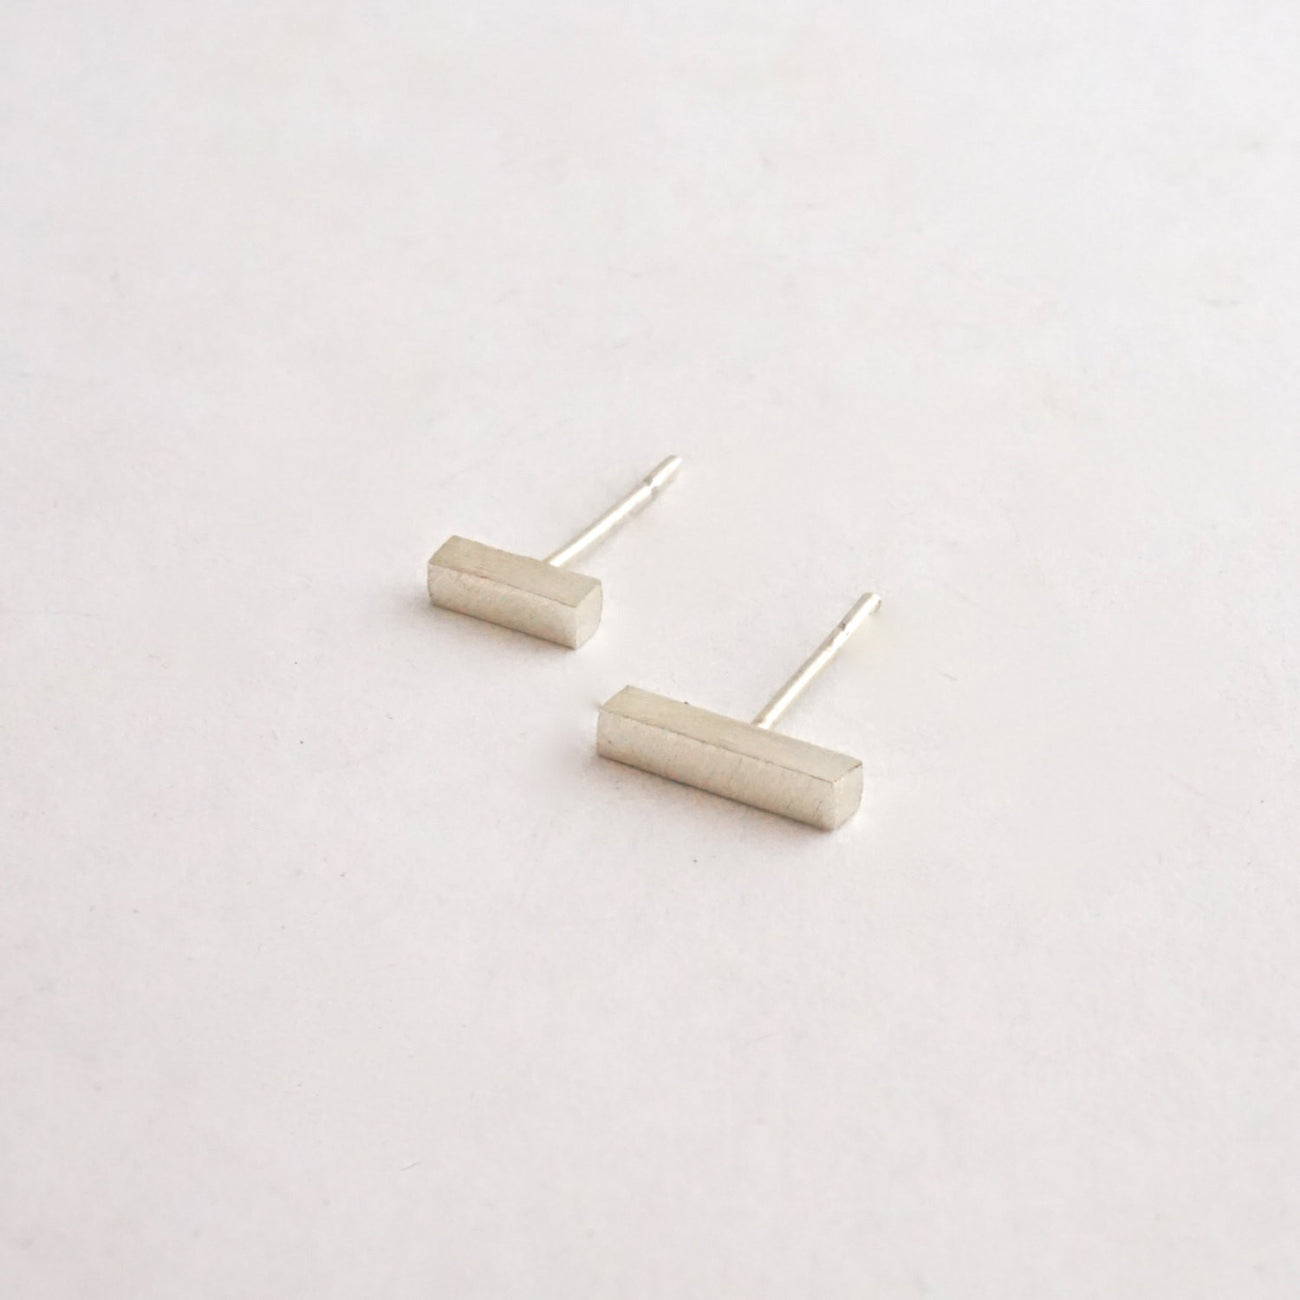 "Distinctive Affordable Hand-Made Thick Bar Stud Earring Set One Pair 3/8"" And One Pair 1/4"" - 0166 - Virginia Wynne Designs"